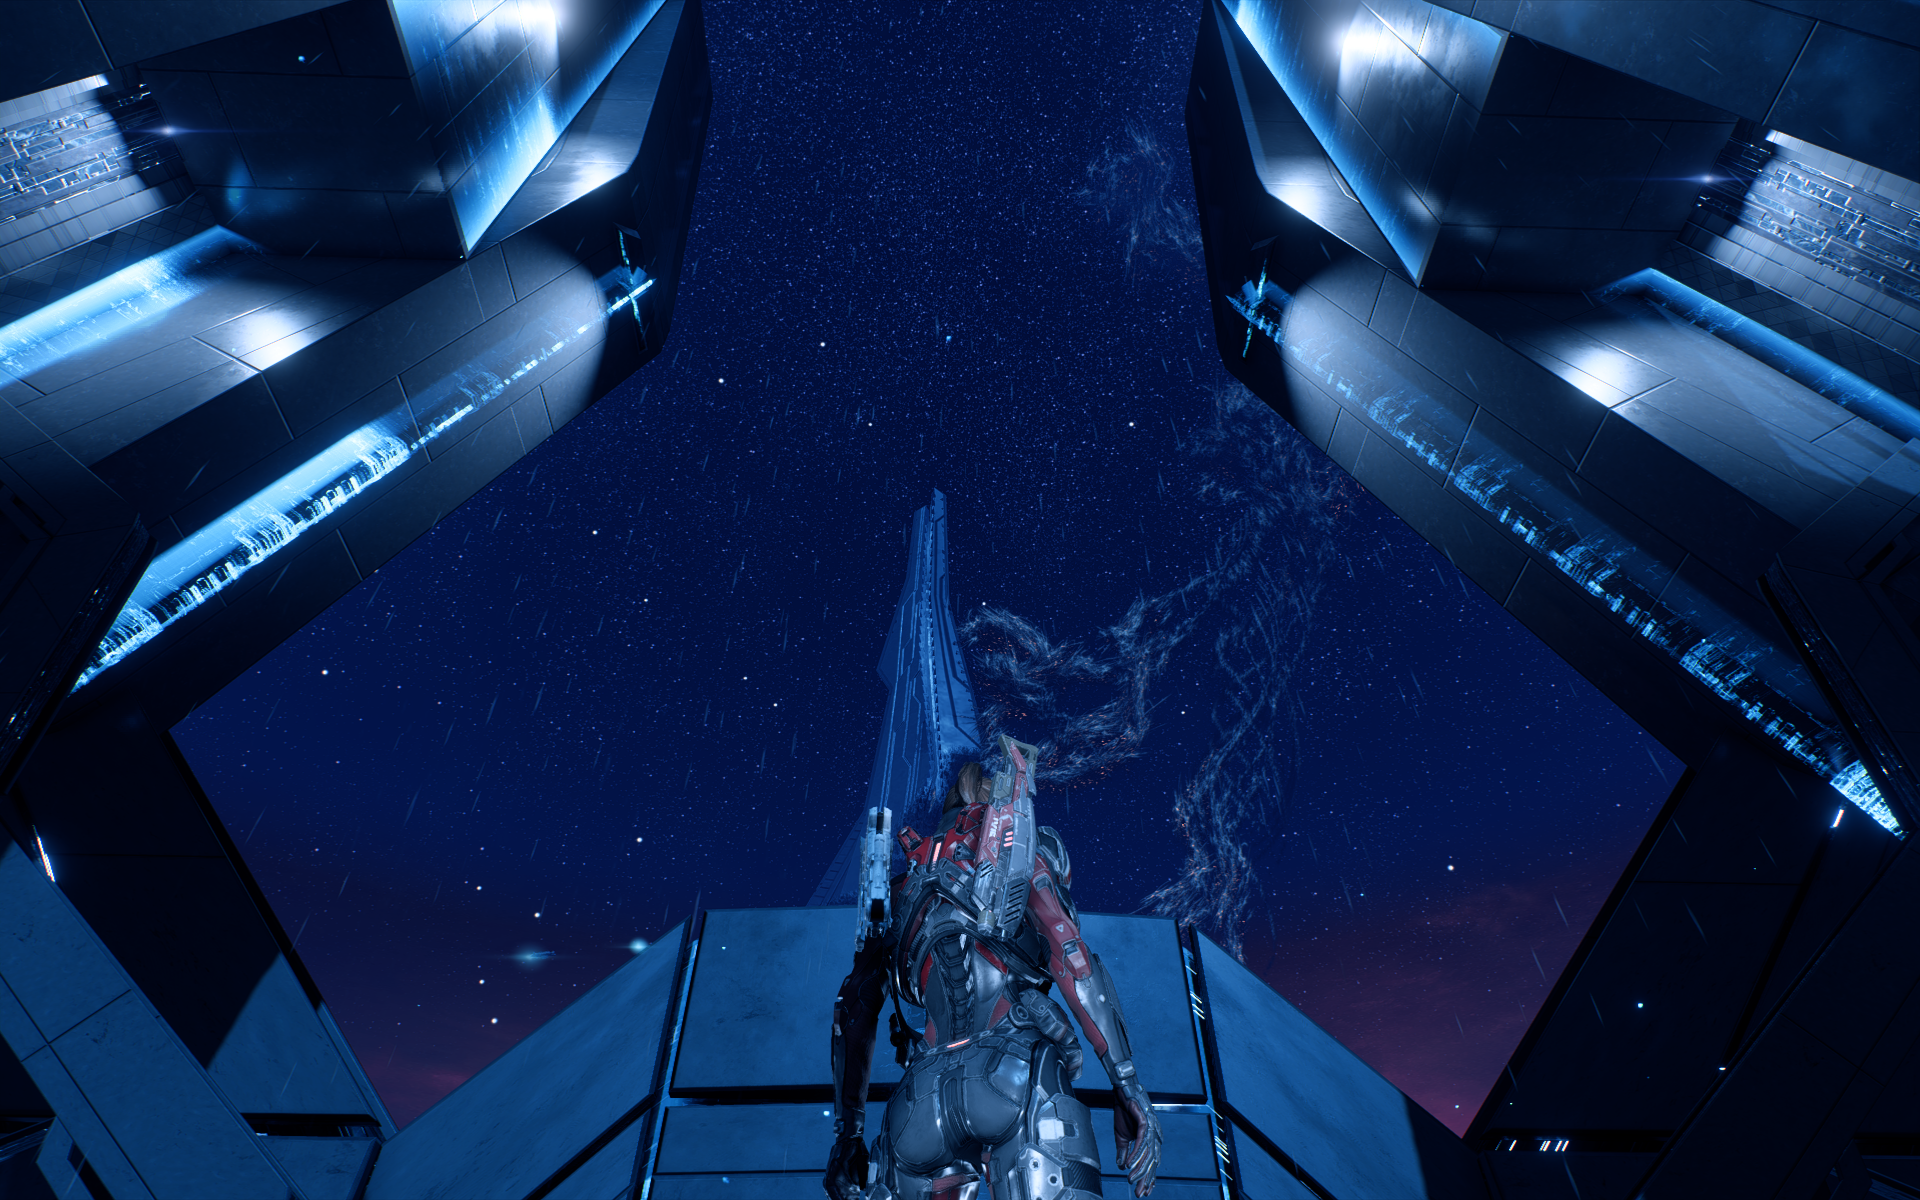 Mass Effect Andromeda Screenshot  - 04.05.31.88.png - Mass Effect: Andromeda